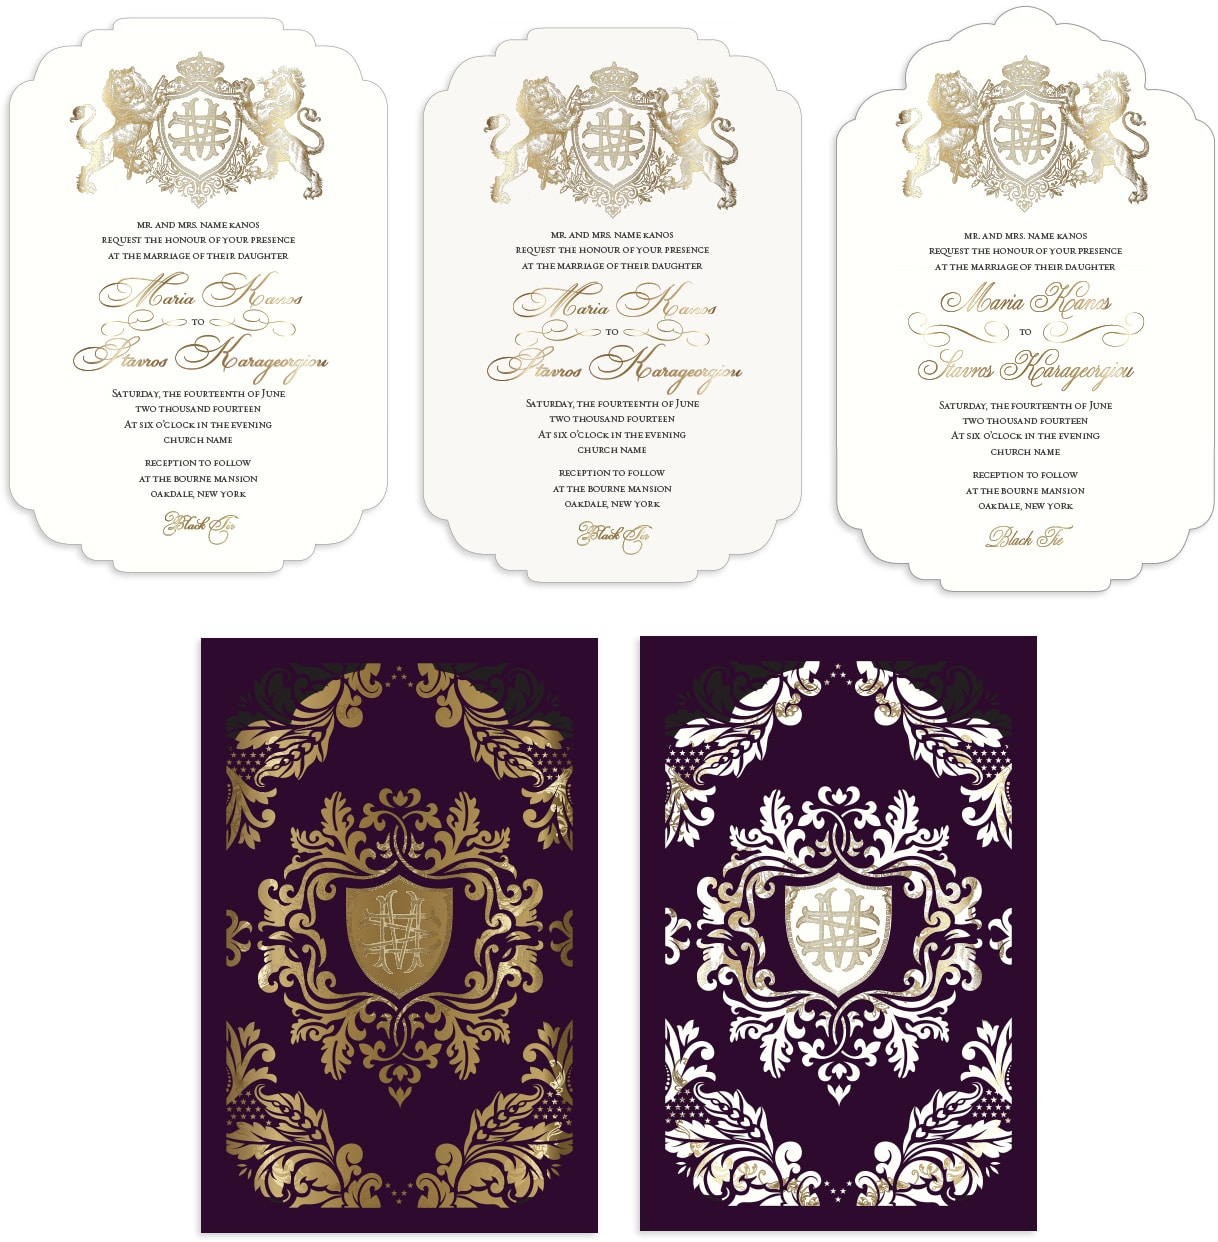 Ornate laser cut sleeve and invitation sketches